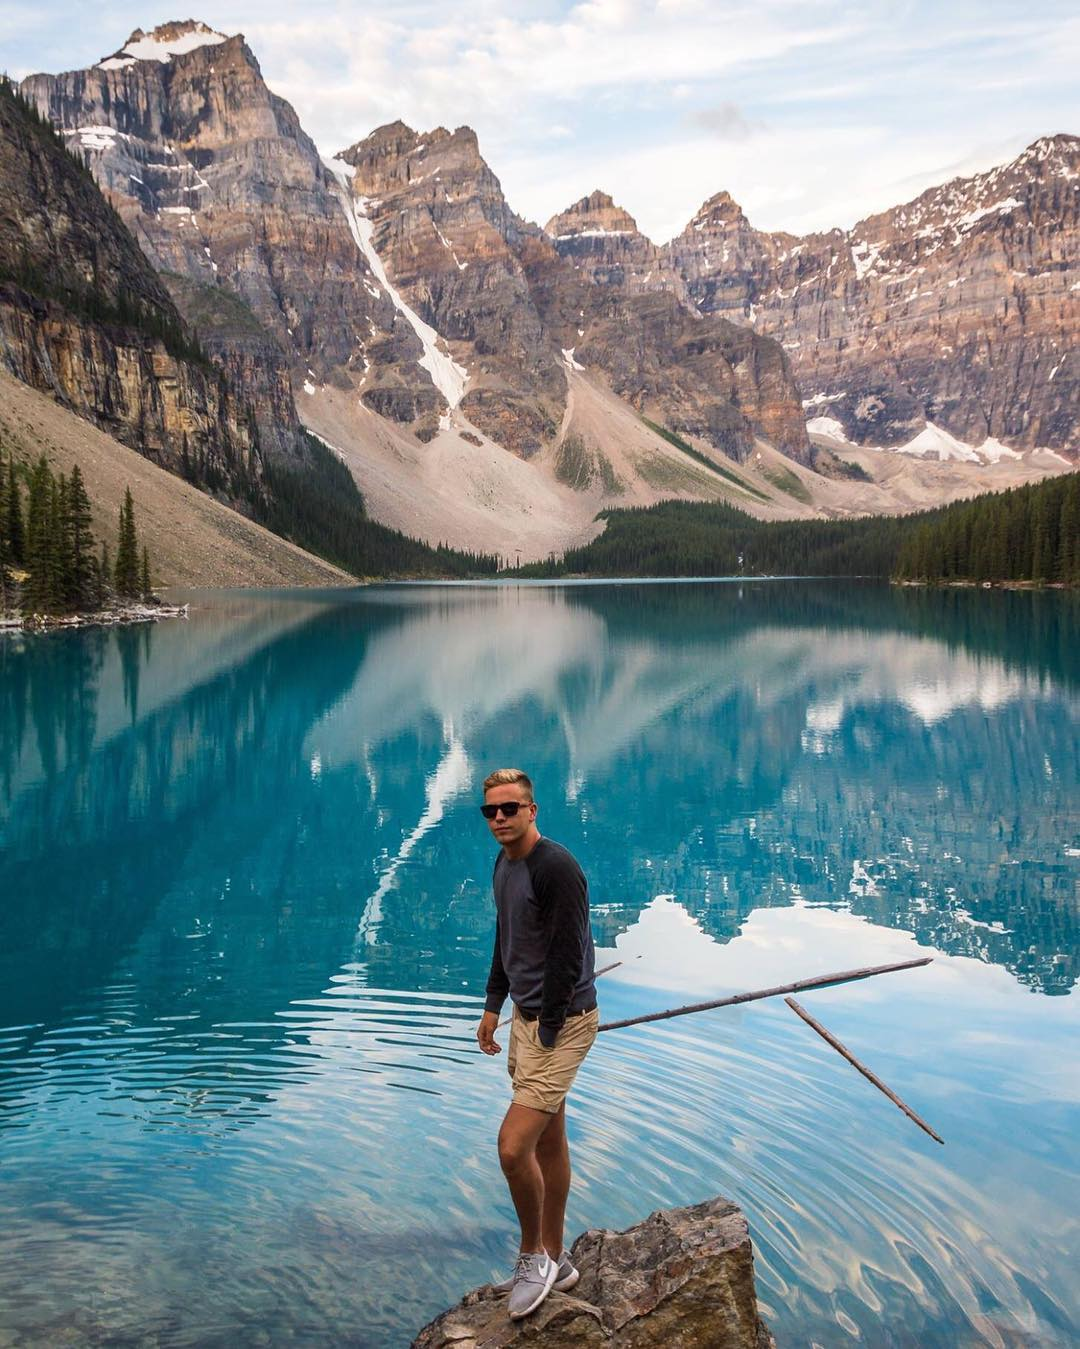 Trip to Banff, anyone? Our friend @dieuwertvanbedaf has the right idea... Exploring the Rockies at Moraine Lake!  PC: @victoraerden